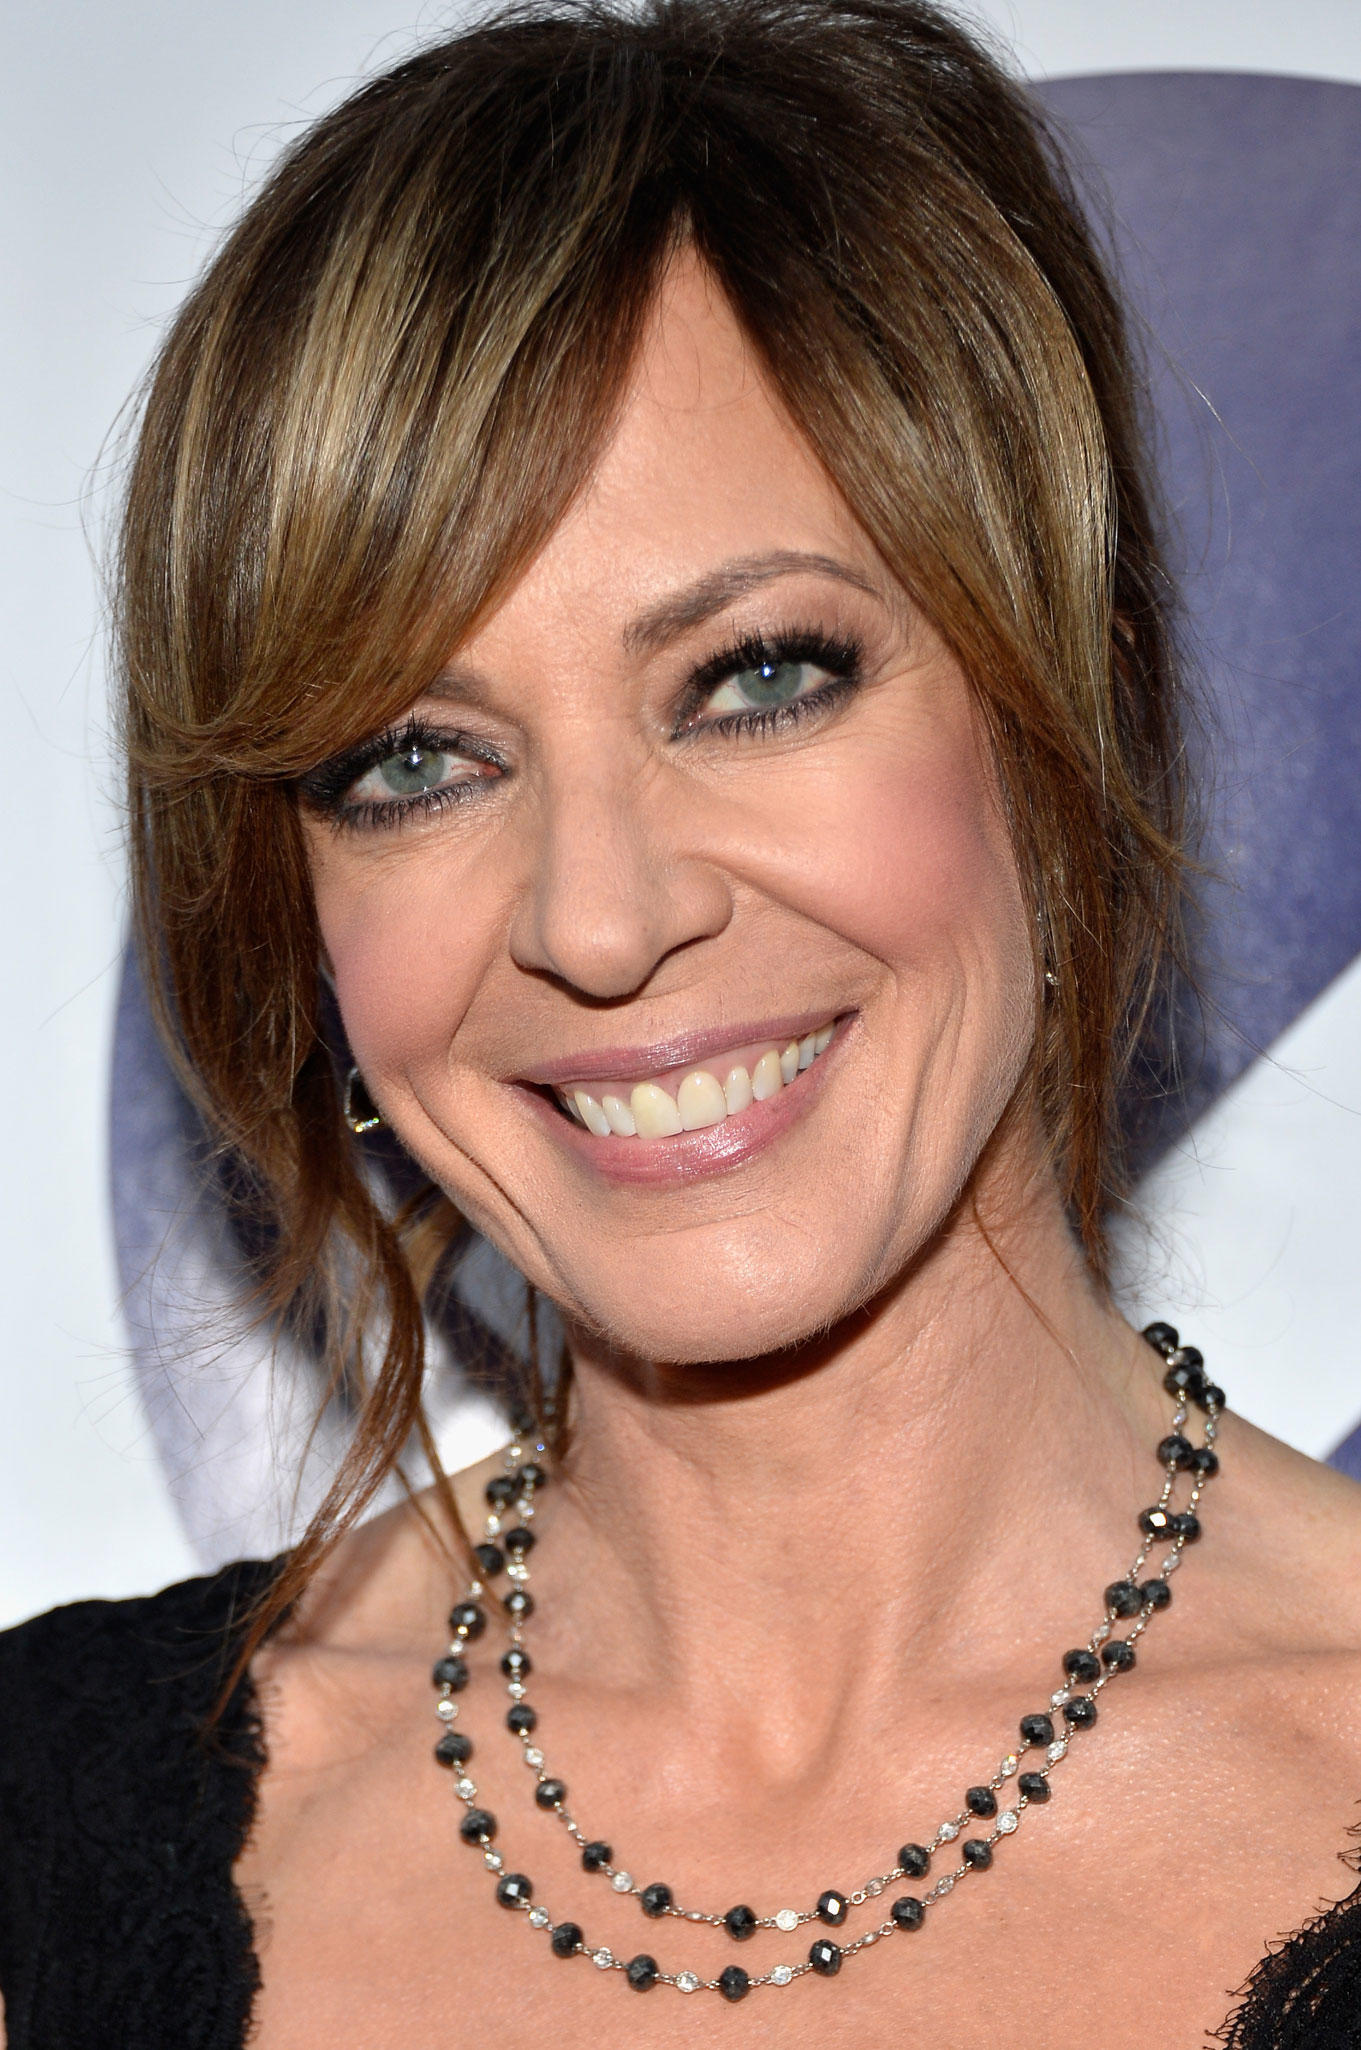 Allison janney life during wartime - 2 3